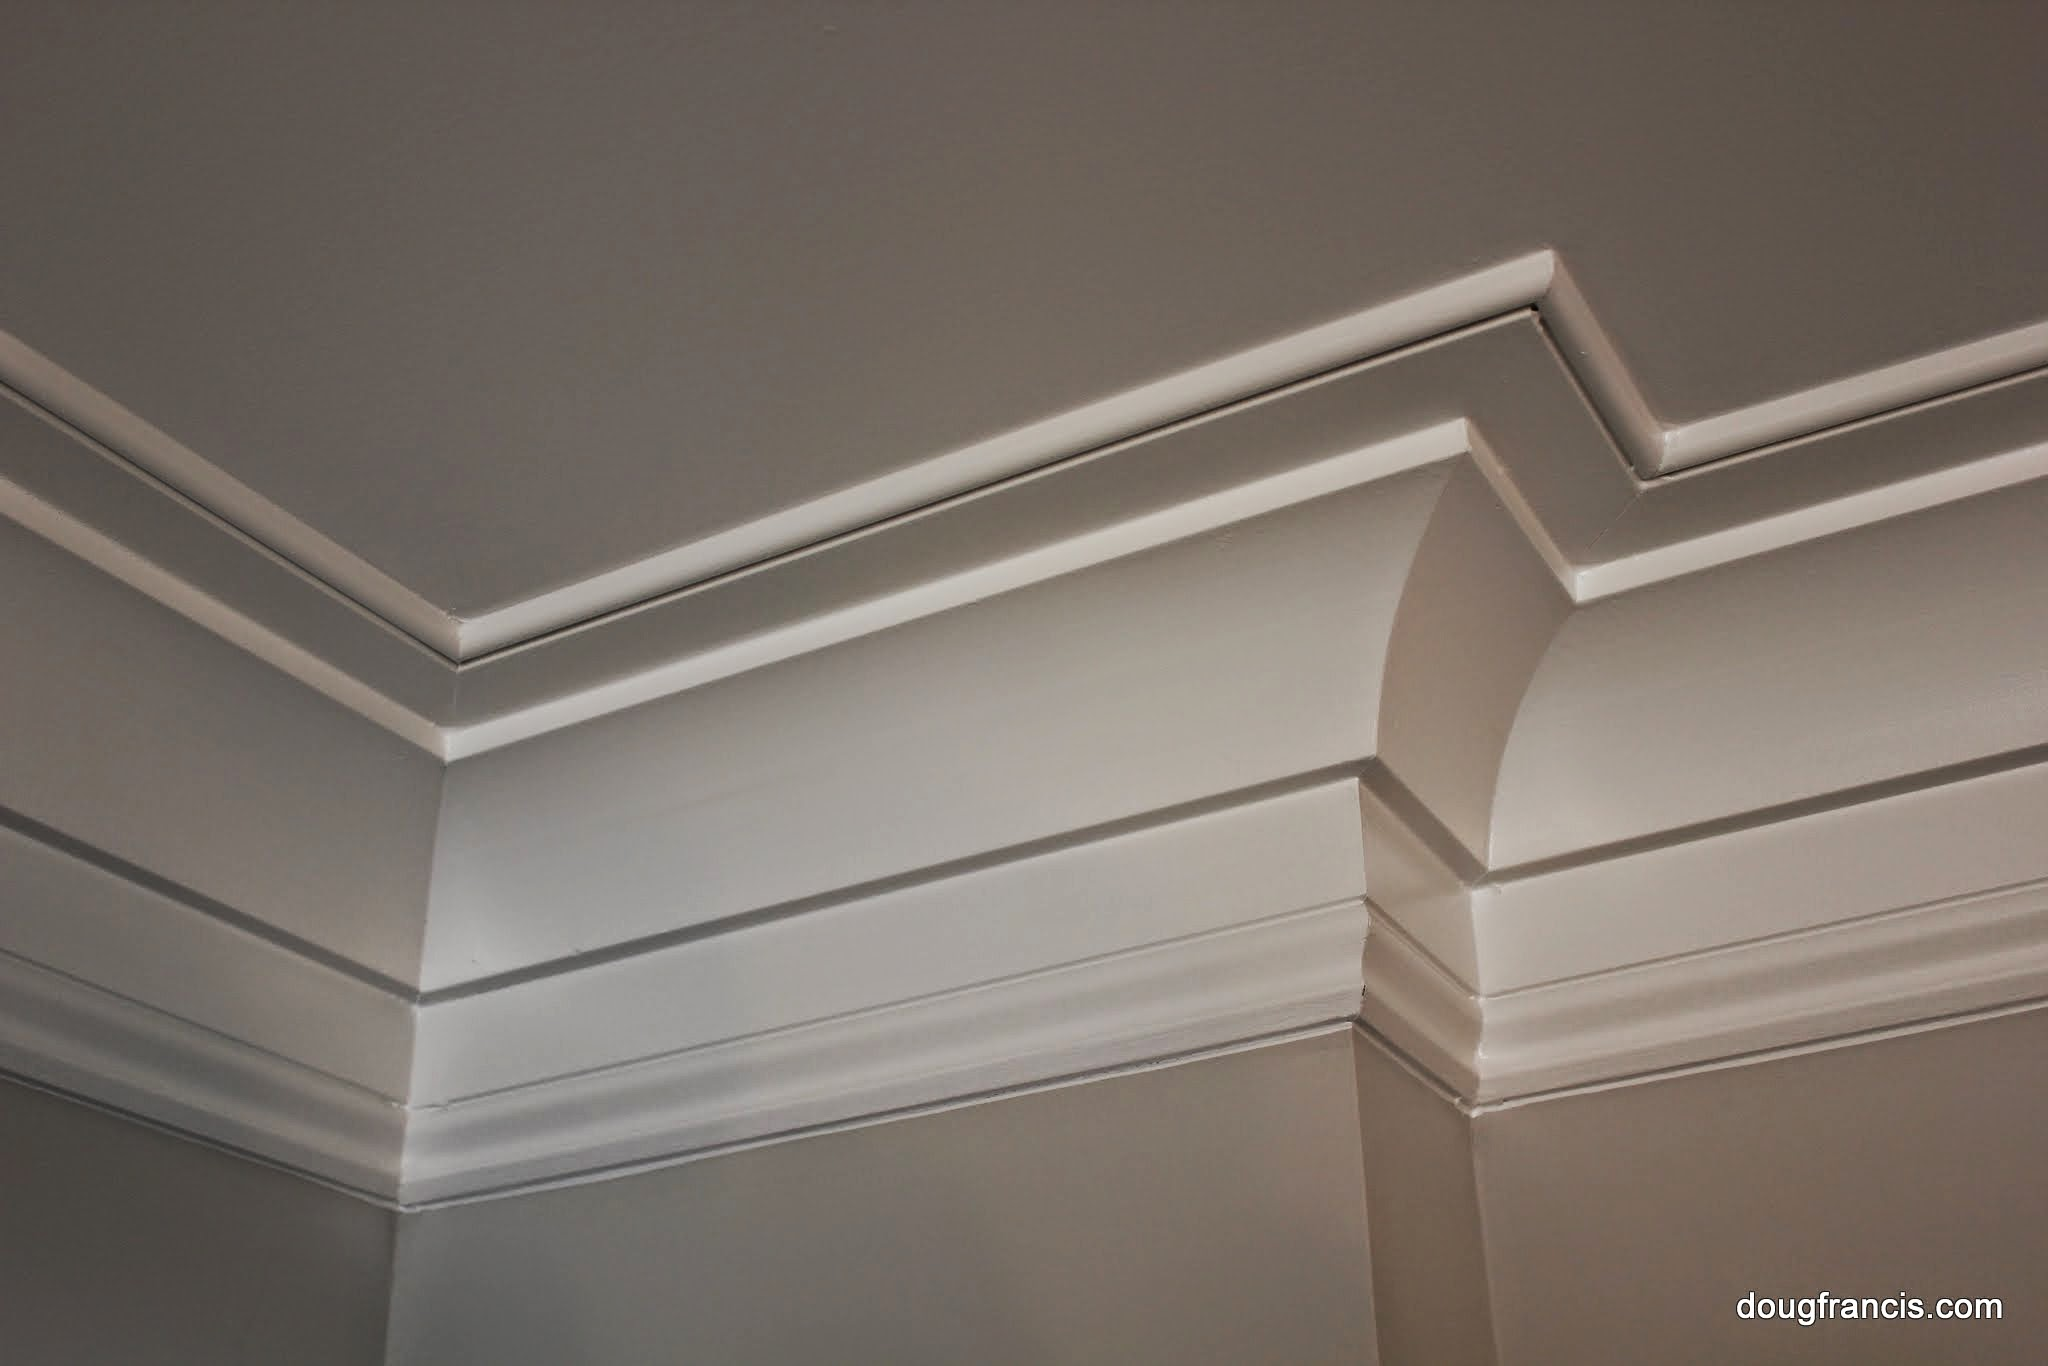 kitchen cabinet door profiles with New Home Crown Molding Vienna Virginia on Jewelry For Cabi s Choosing Hardware in addition New Home Crown Molding Vienna Virginia moreover Watch additionally Replacement Shaker Cabi  Doors together with T Track.